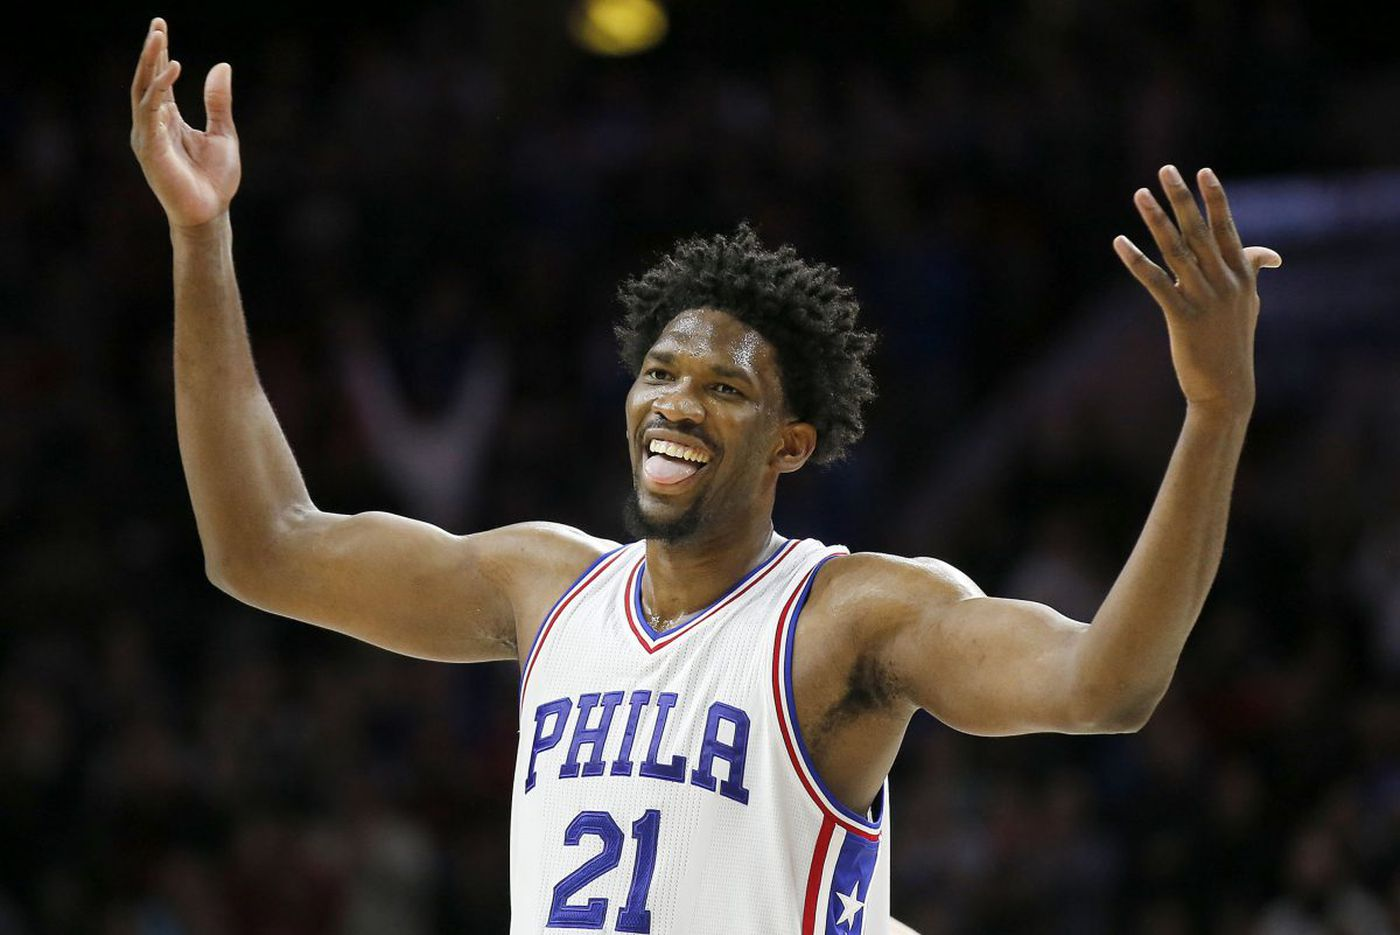 Bummer for Joel Embiid: Brett Brown expects his minutes to be 'in the teens' early